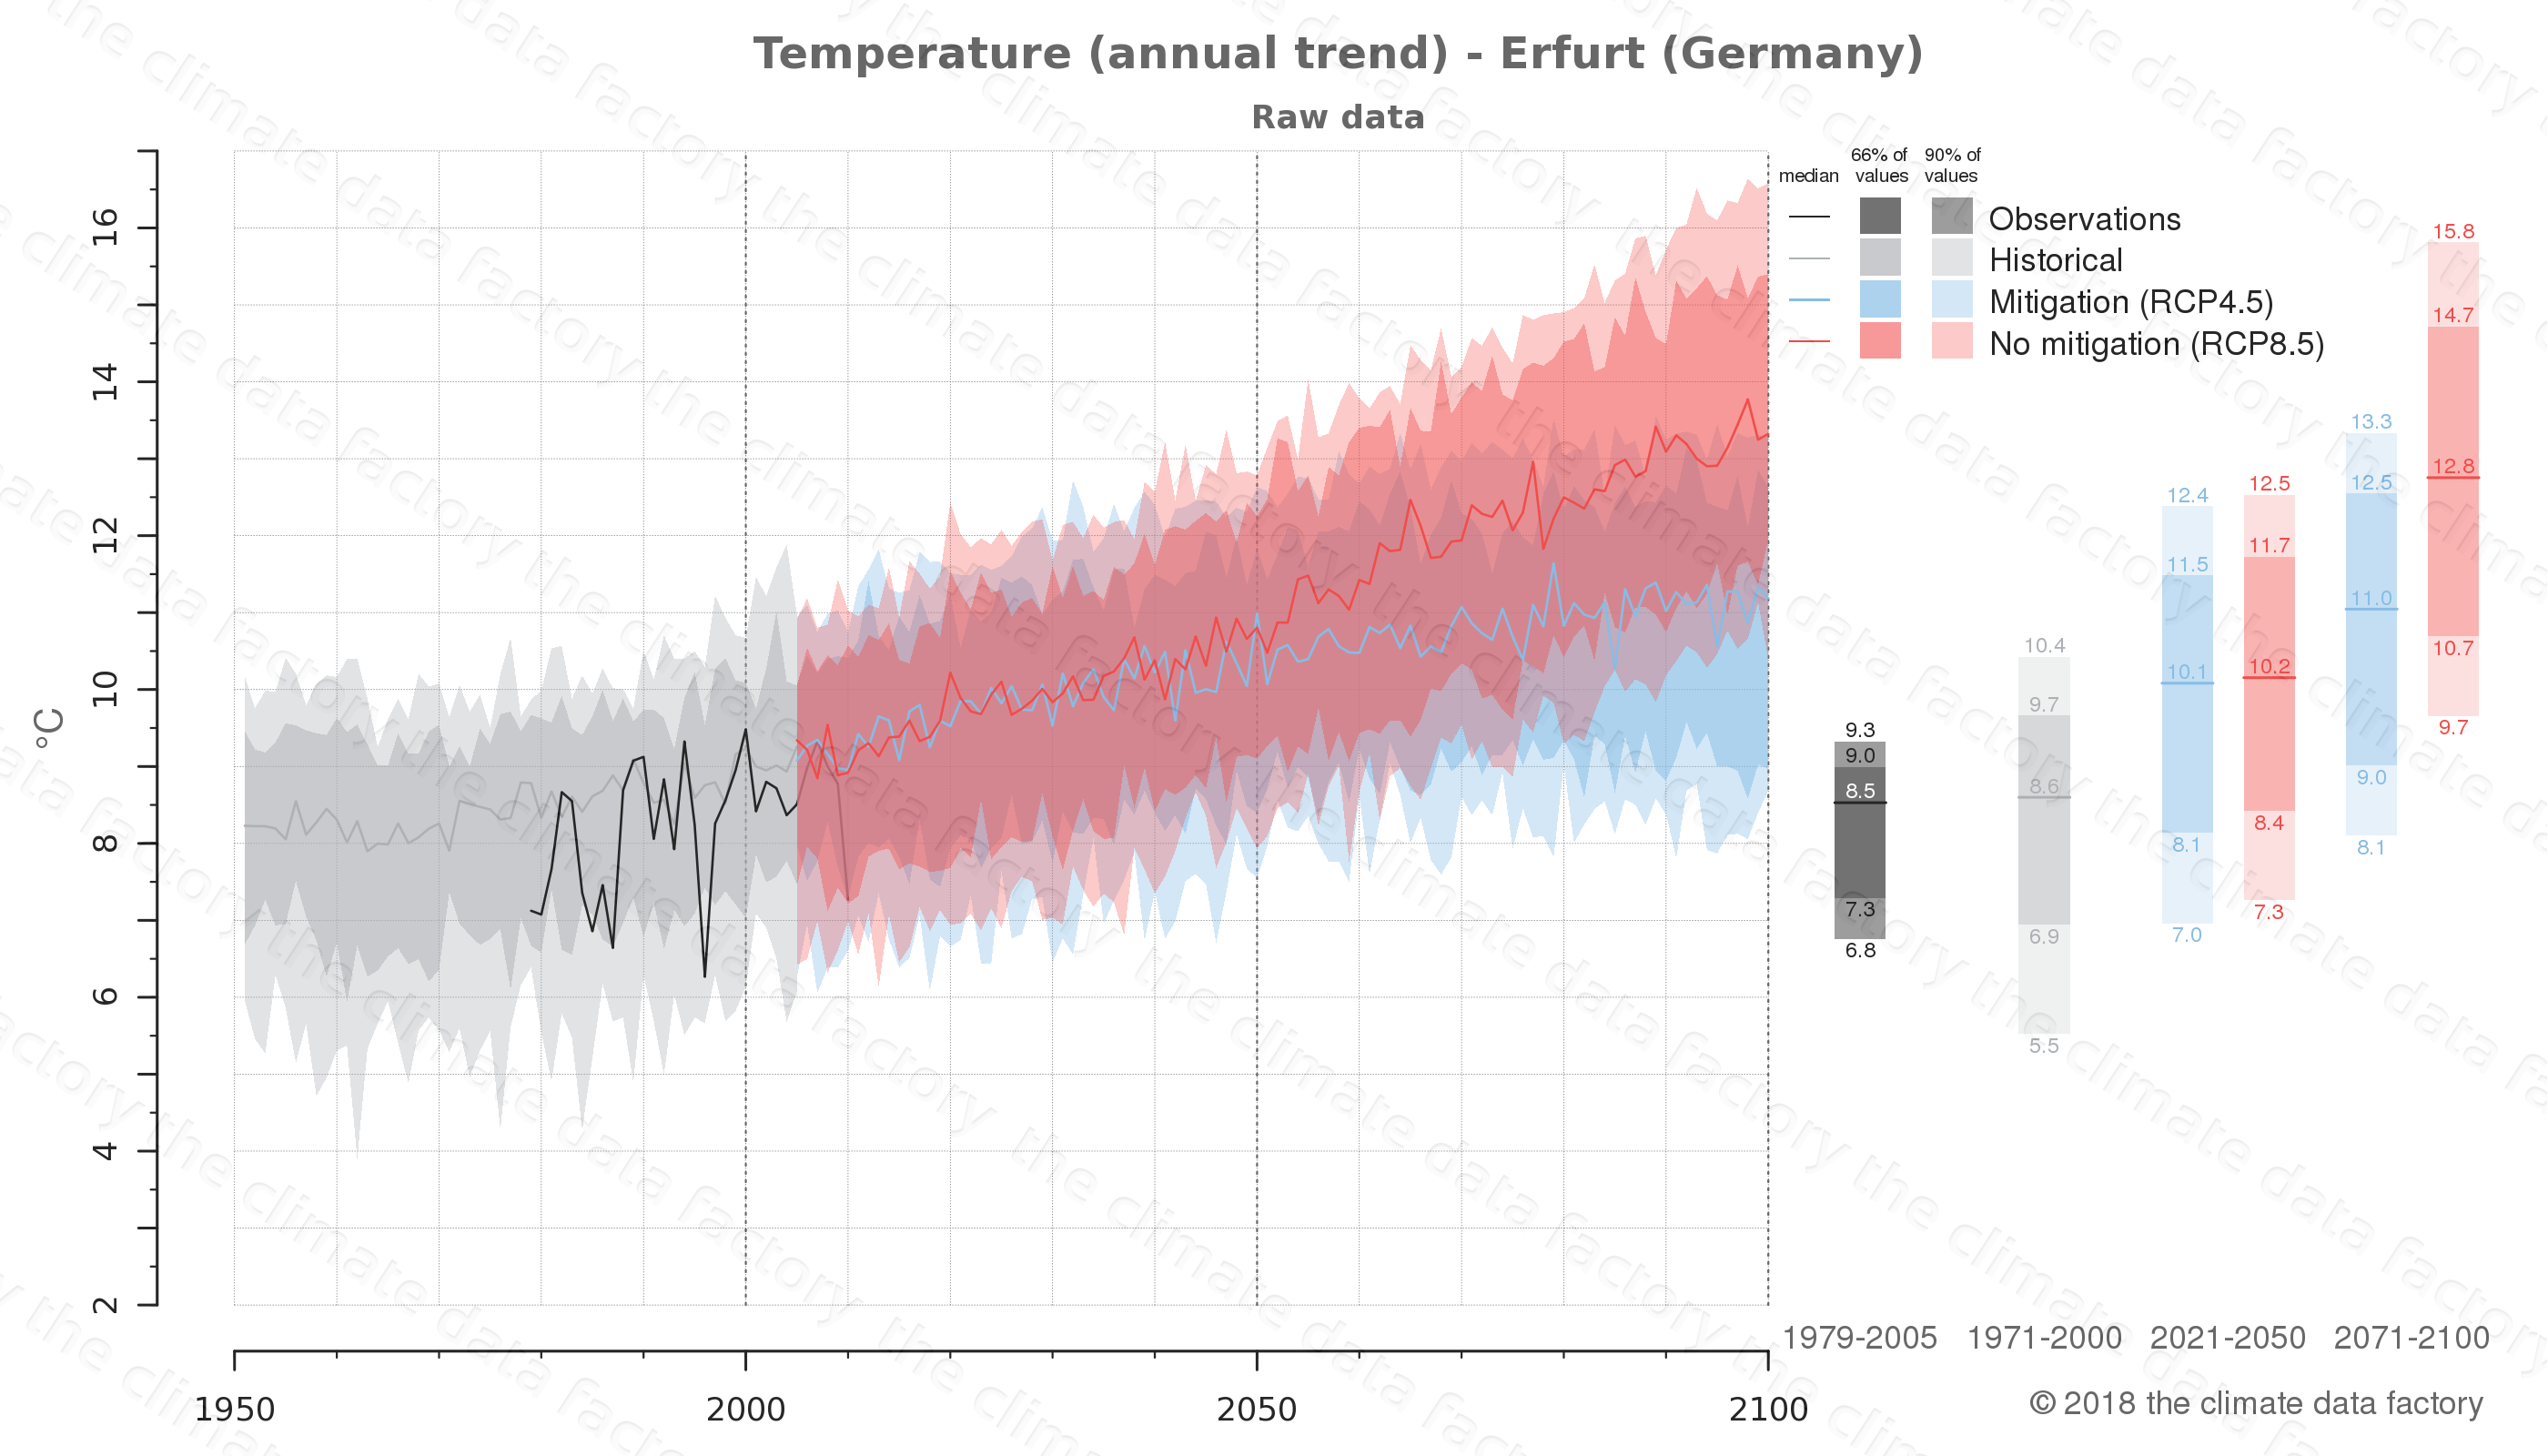 climate change data policy adaptation climate graph city data temperature erfurt germany